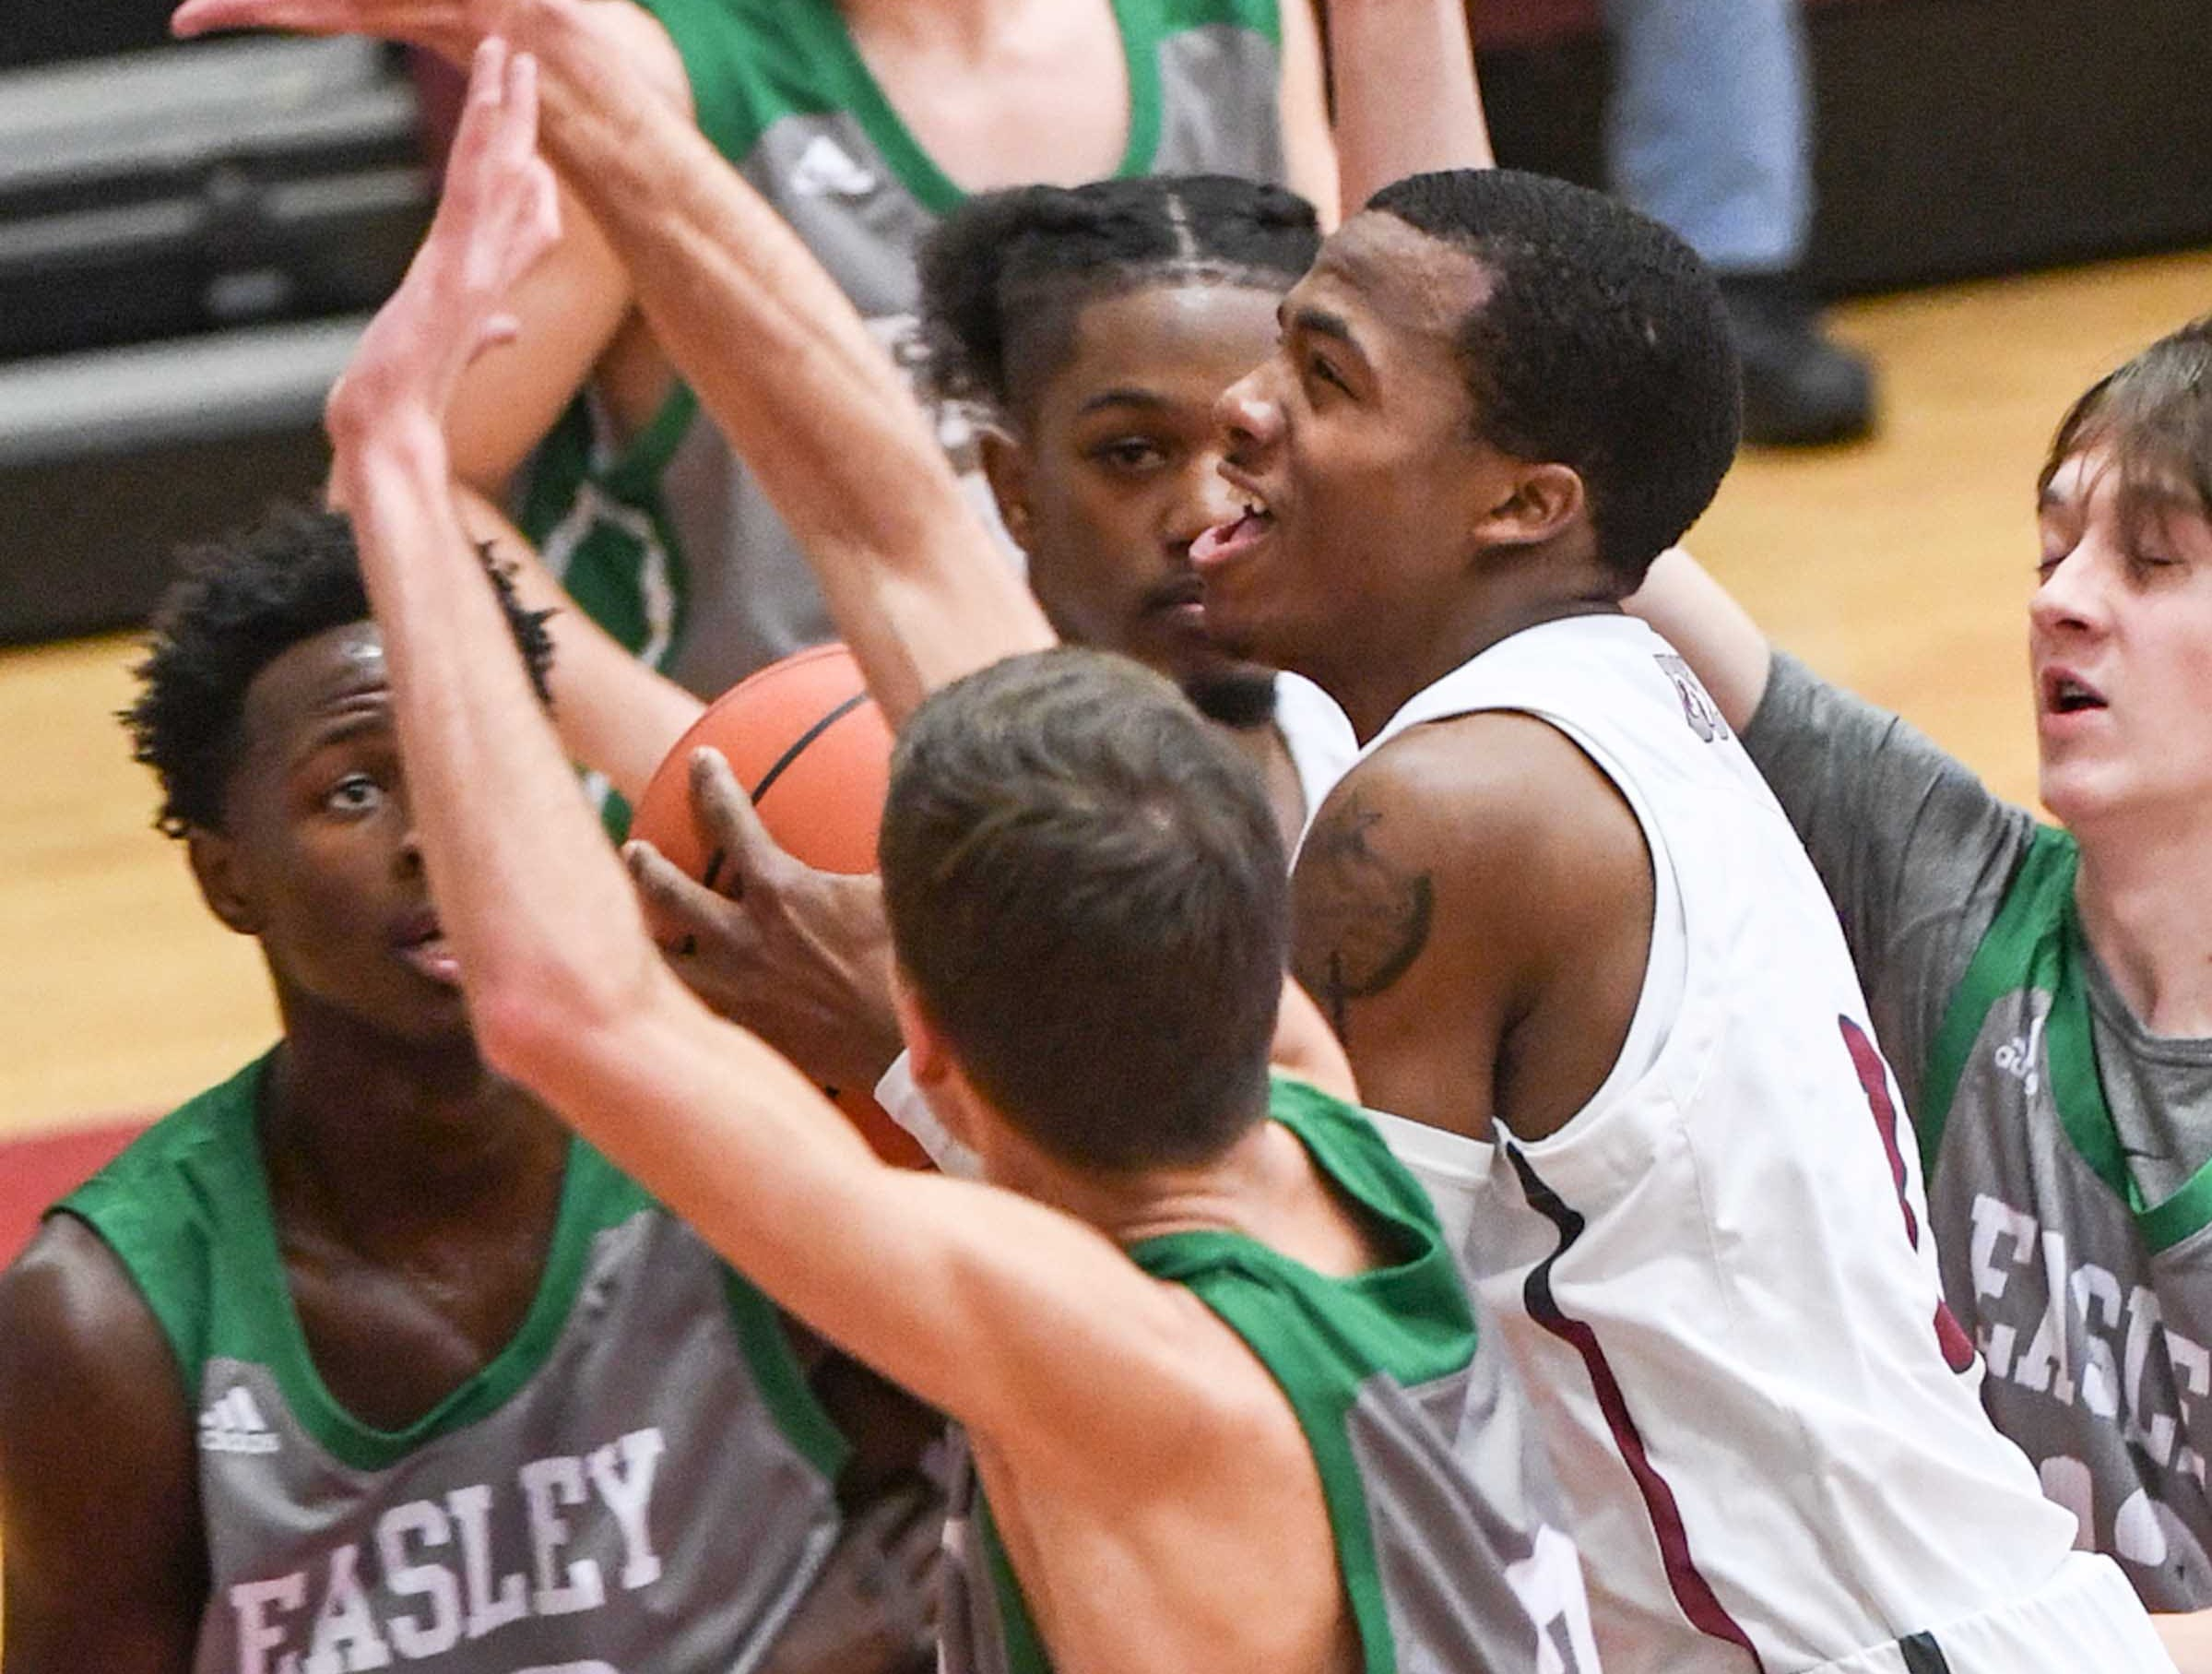 Westside senior Traye Carson(3) shoots between Easley junior Jaquan Sanders(22) and Easley senior Griffin Smith(3) for his 1,000th point during the first quarter at Westside High School in Anderson on Friday.